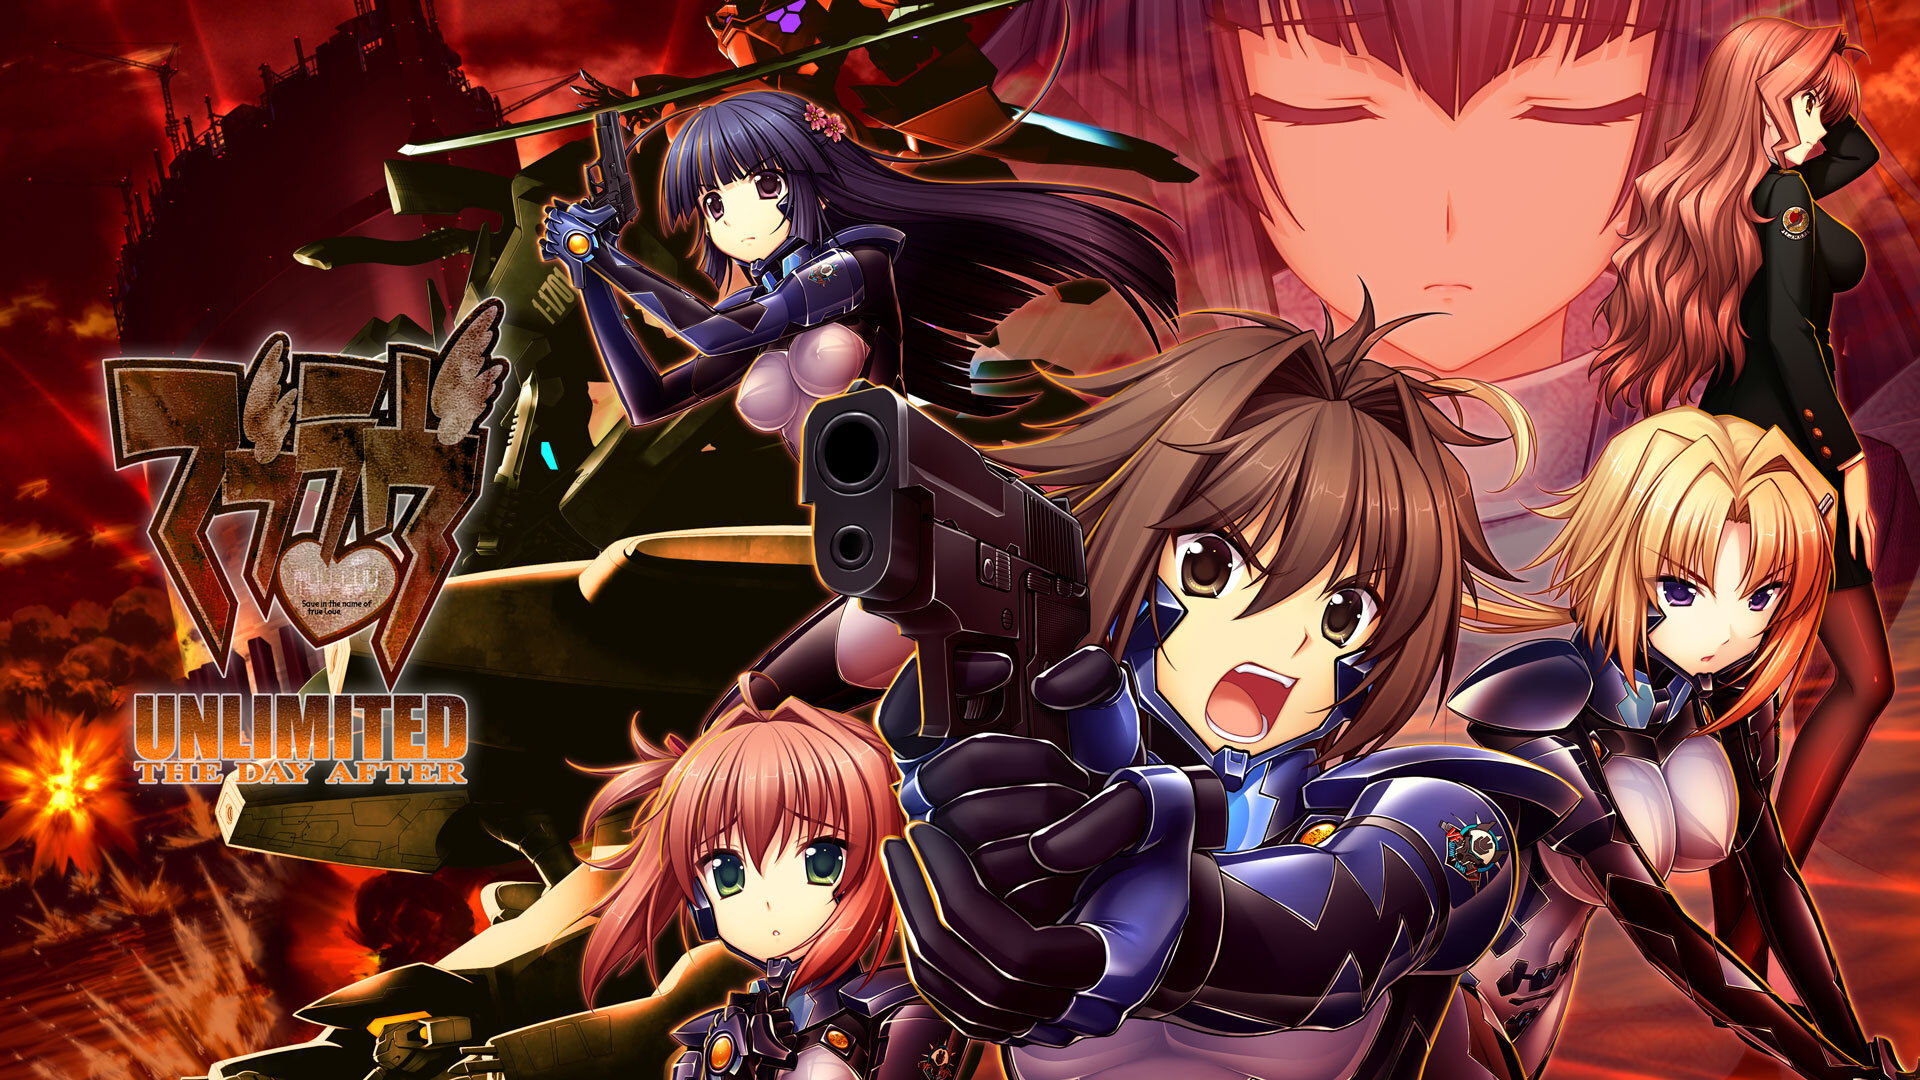 『MUV-LUV UNLIMITED THE DAY AFTER』episode:00~03 Steam版配信開始!